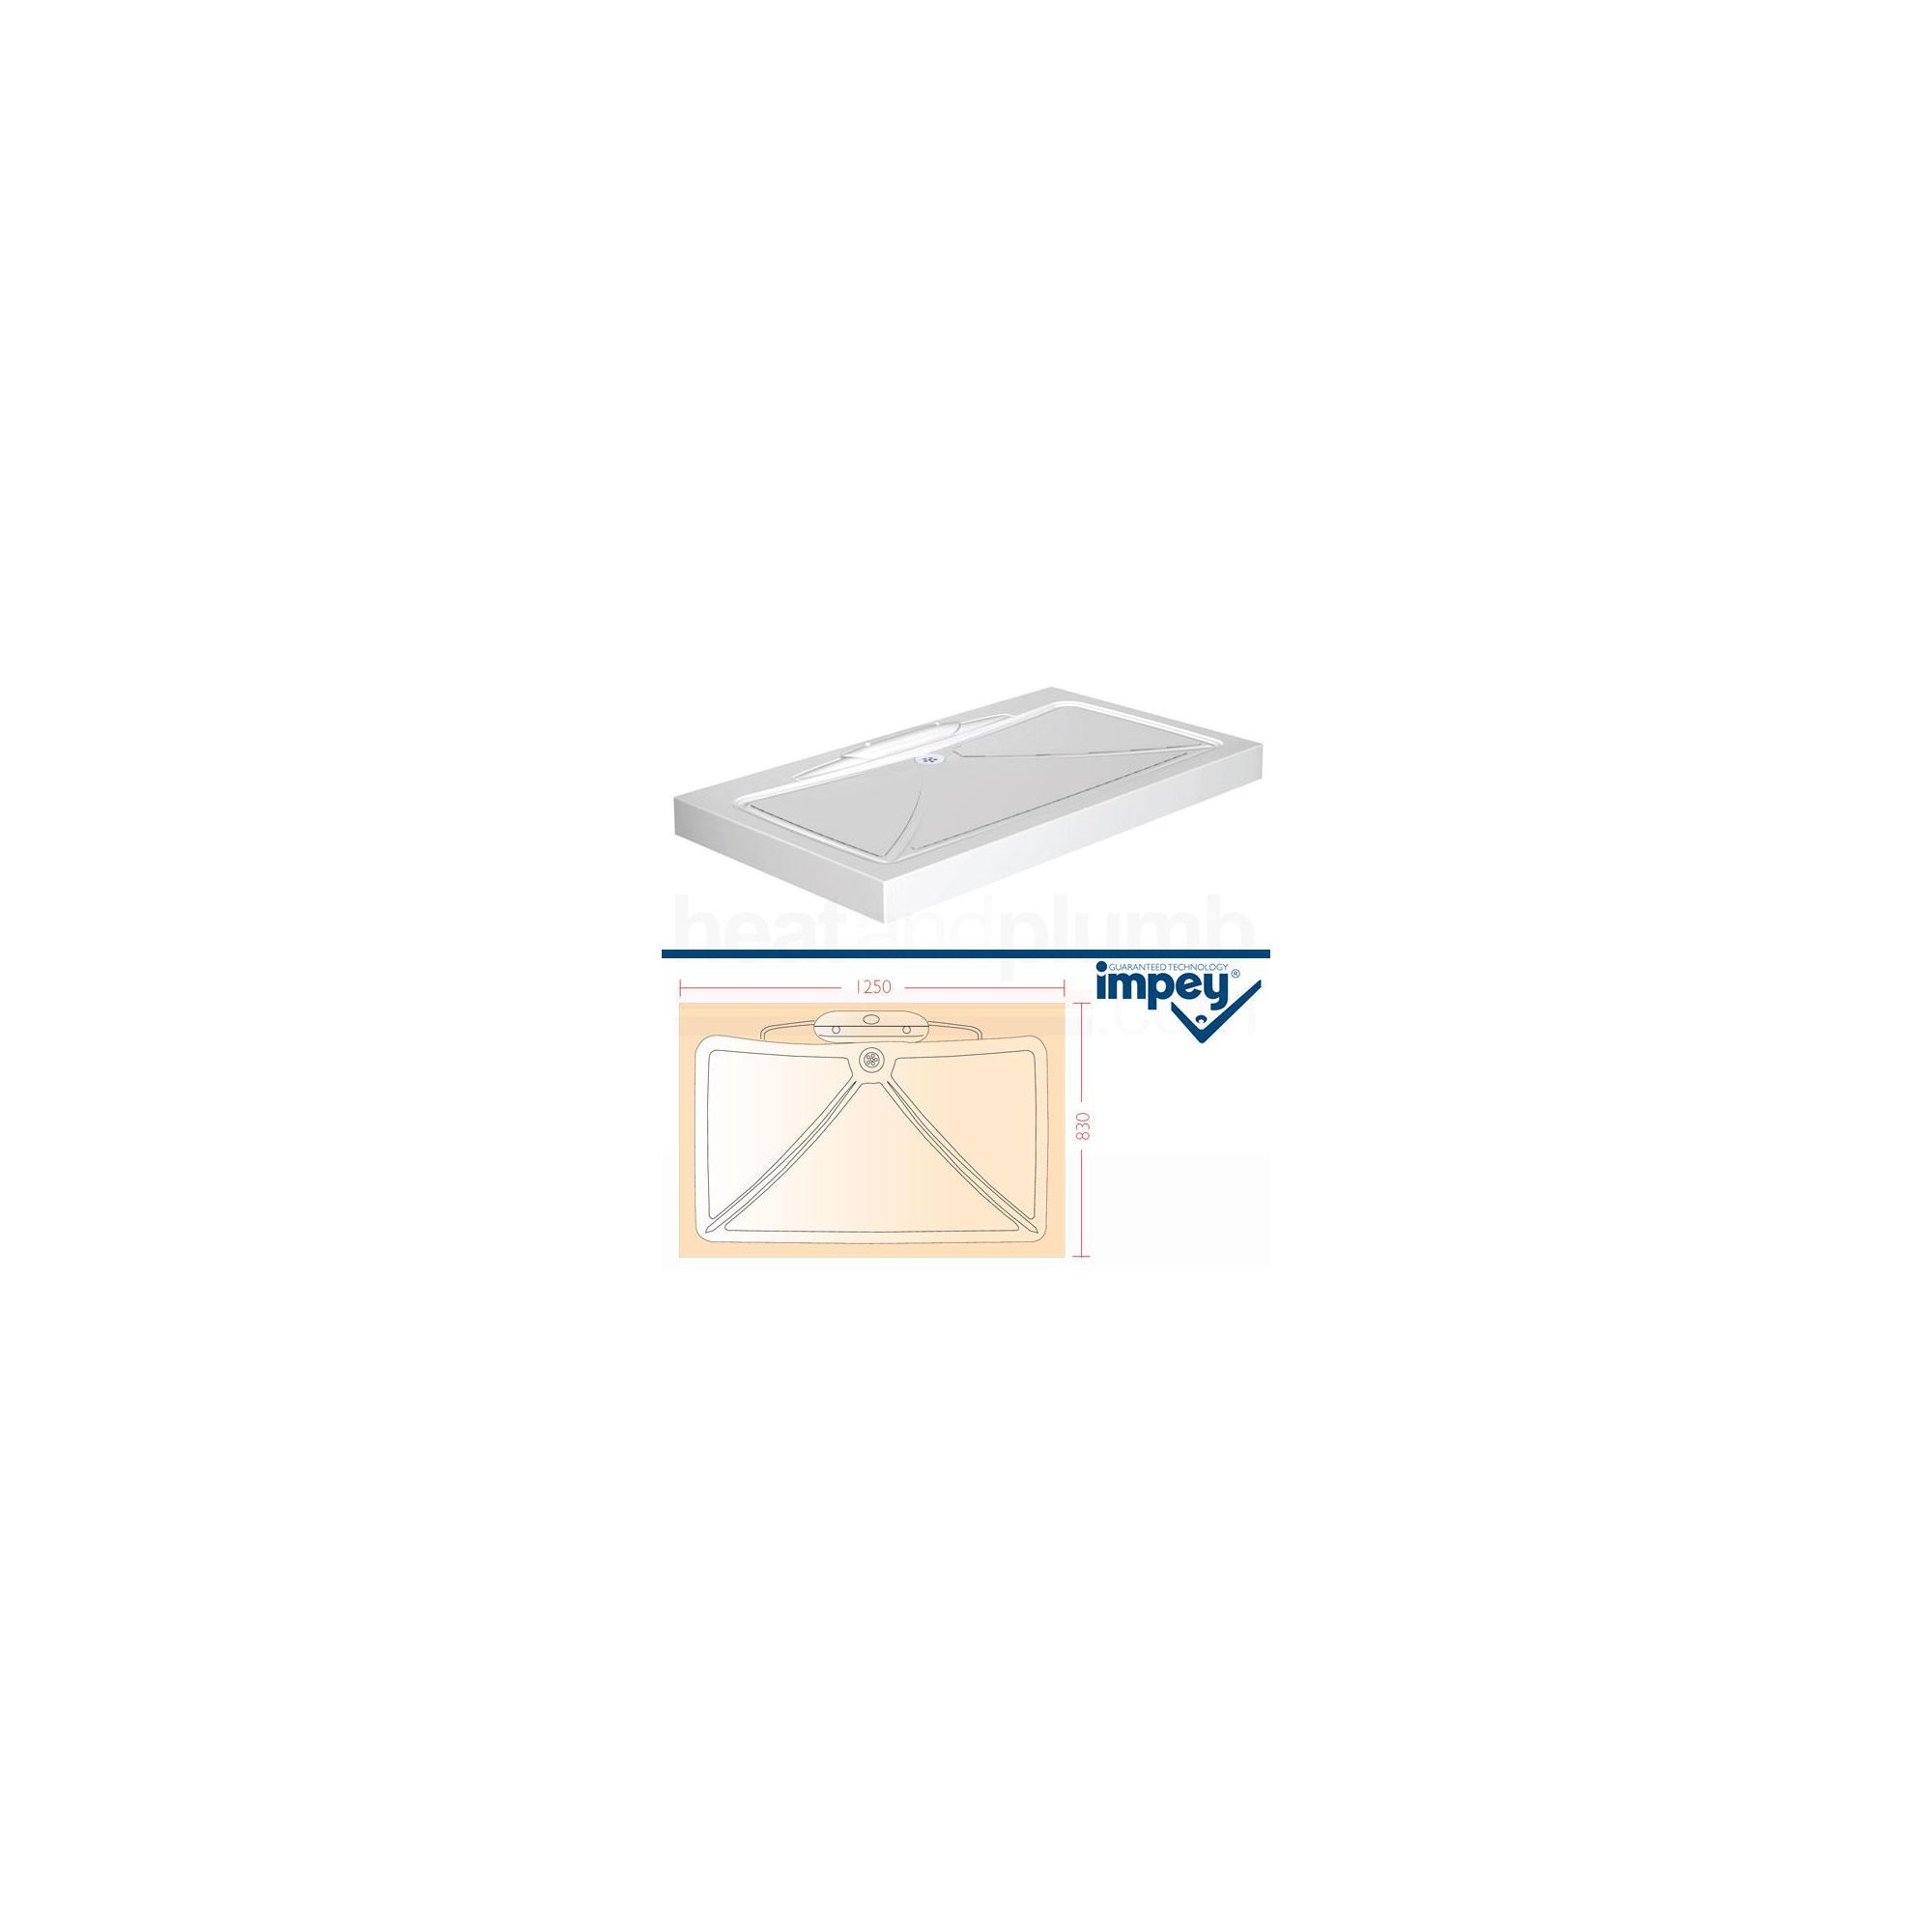 Impey Mendip Shower Tray 1250mm x 830mm at Tescos Direct